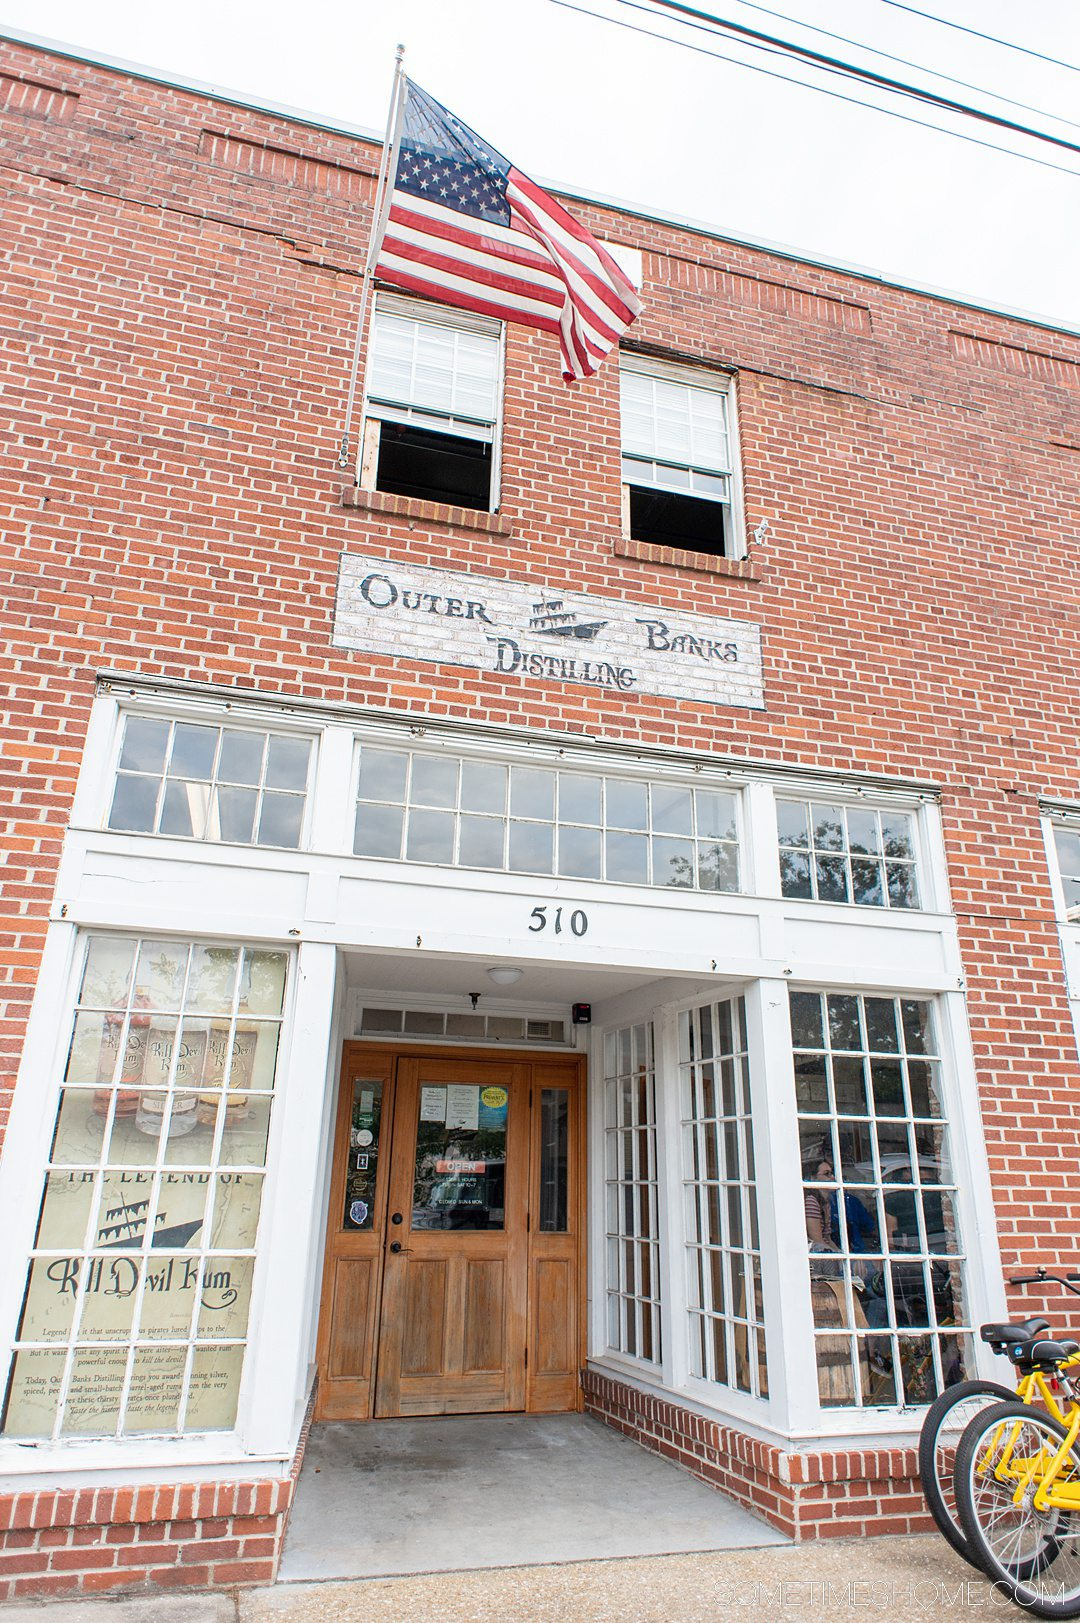 """The facade of a brick and white-painted-wood building that says """"Outer Banks Distilling"""" on the outside sign."""